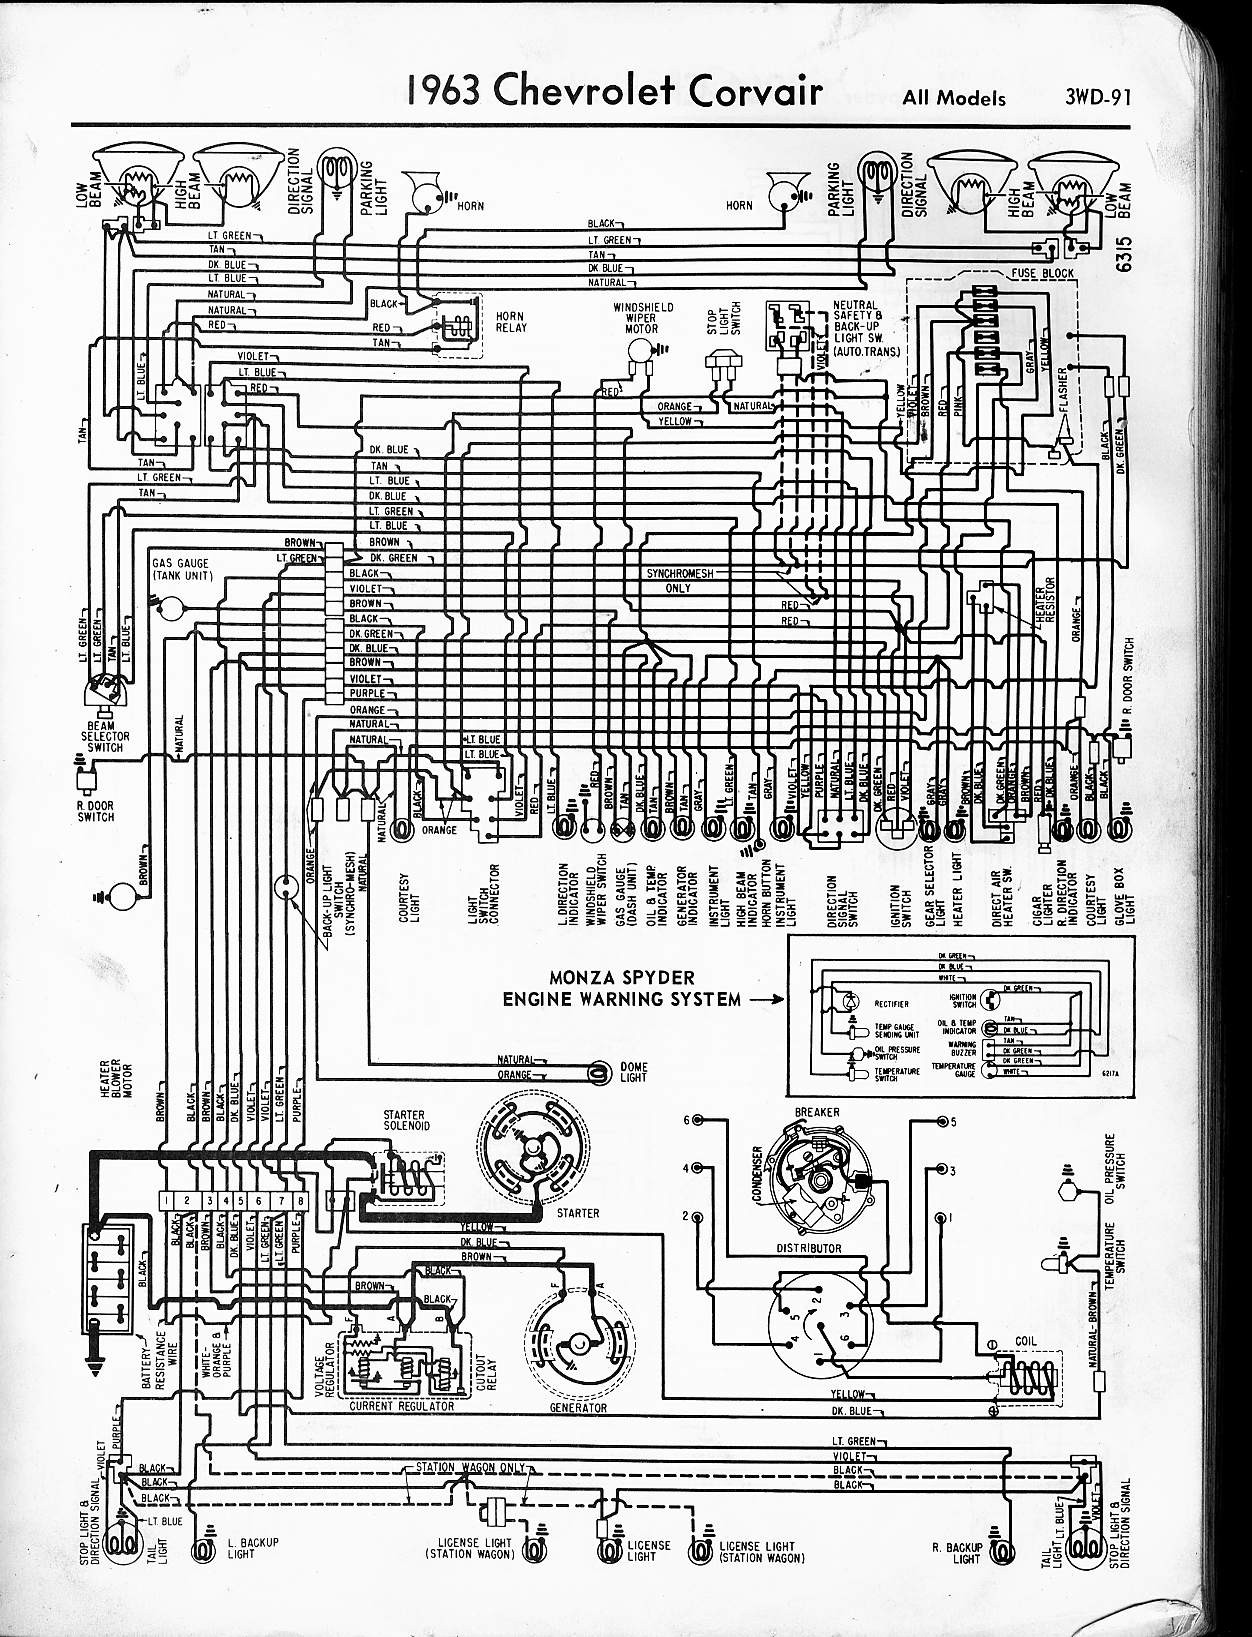 2006 Chevy Impala Engine Diagram 57 65 Wiring Diagrams My Chevrolet Of